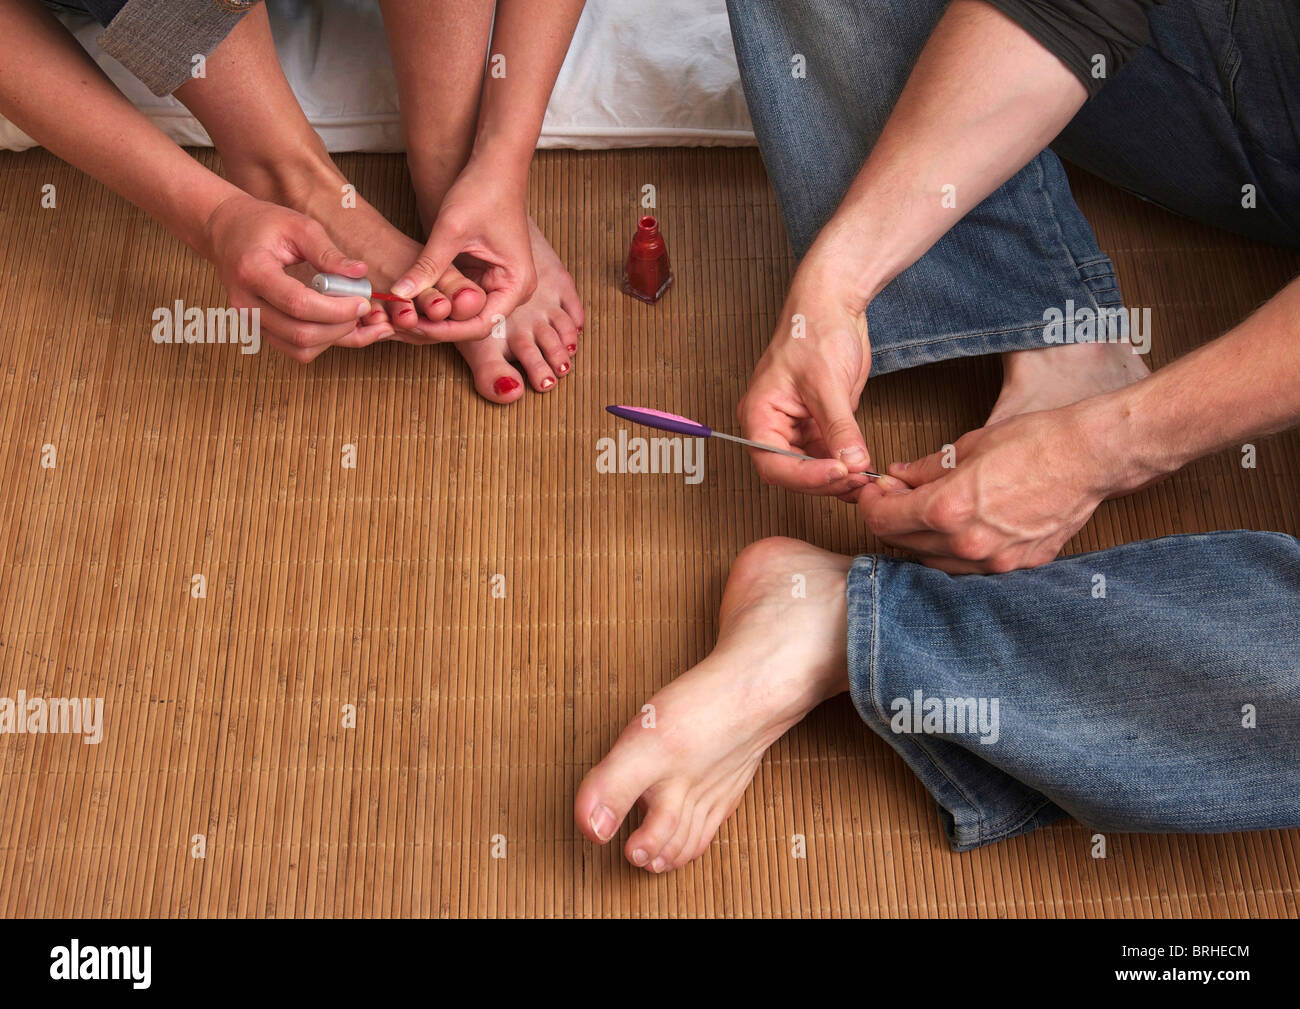 woman painting her toenails with red nail-varnish while man cleans his nails with file - Stock Image